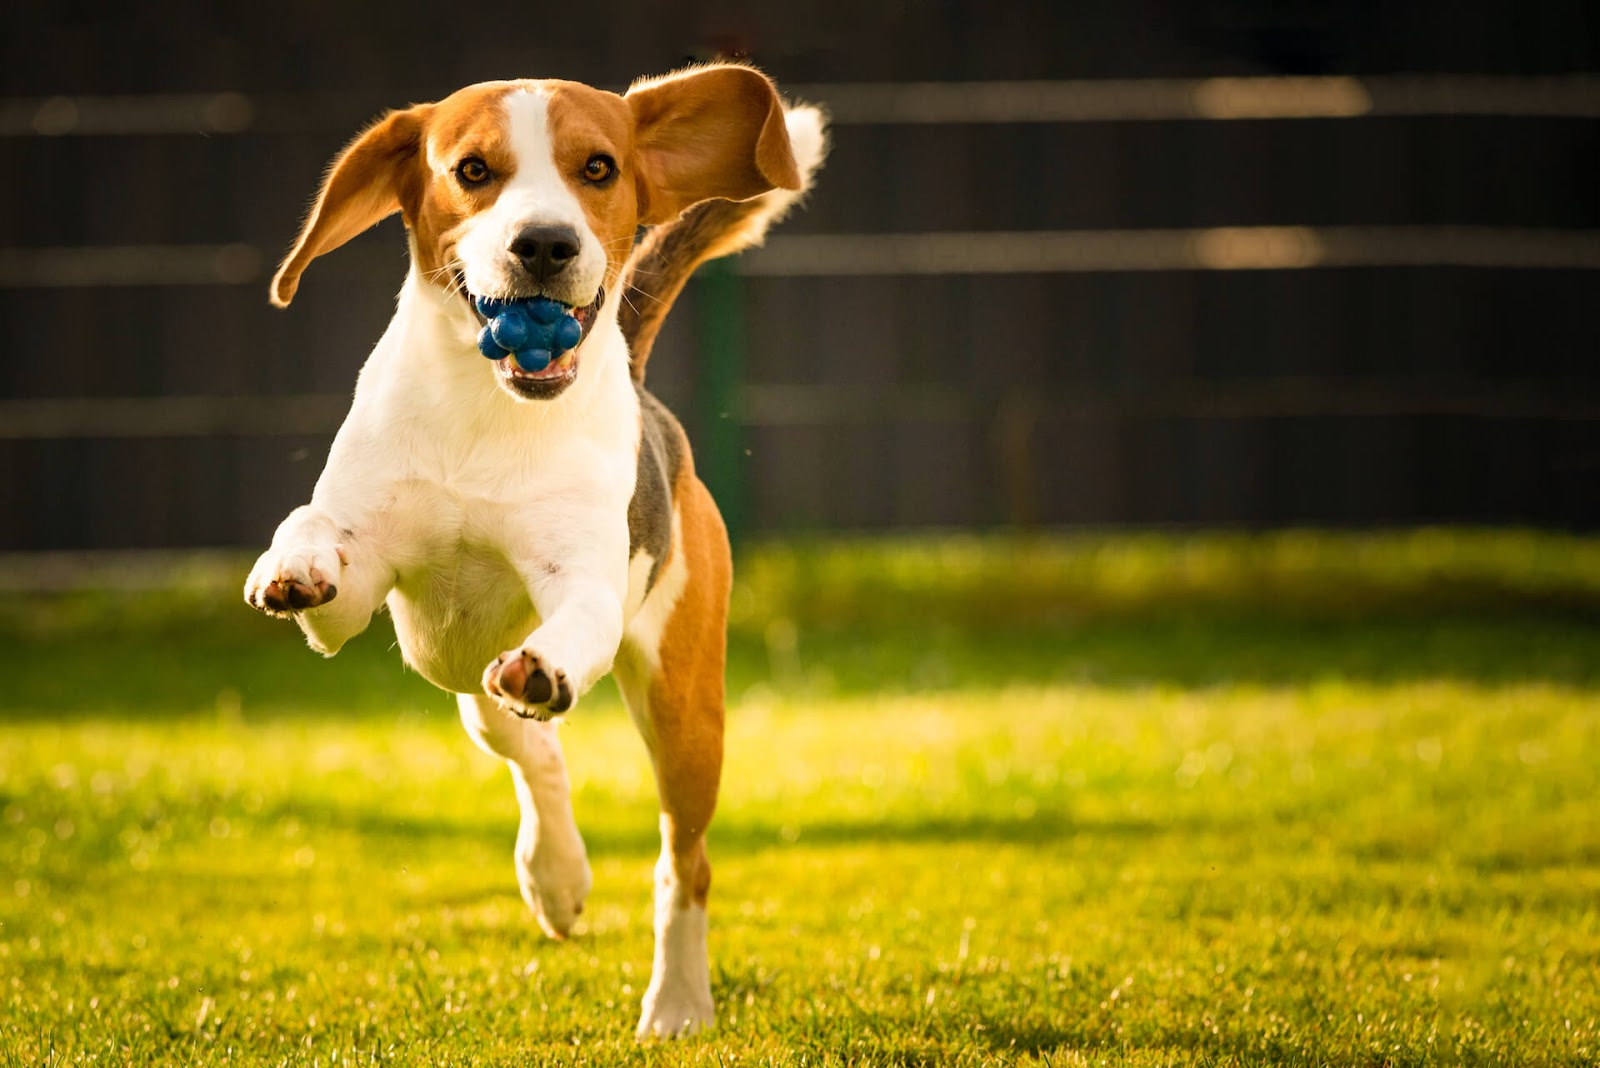 Beagle playing with a ball